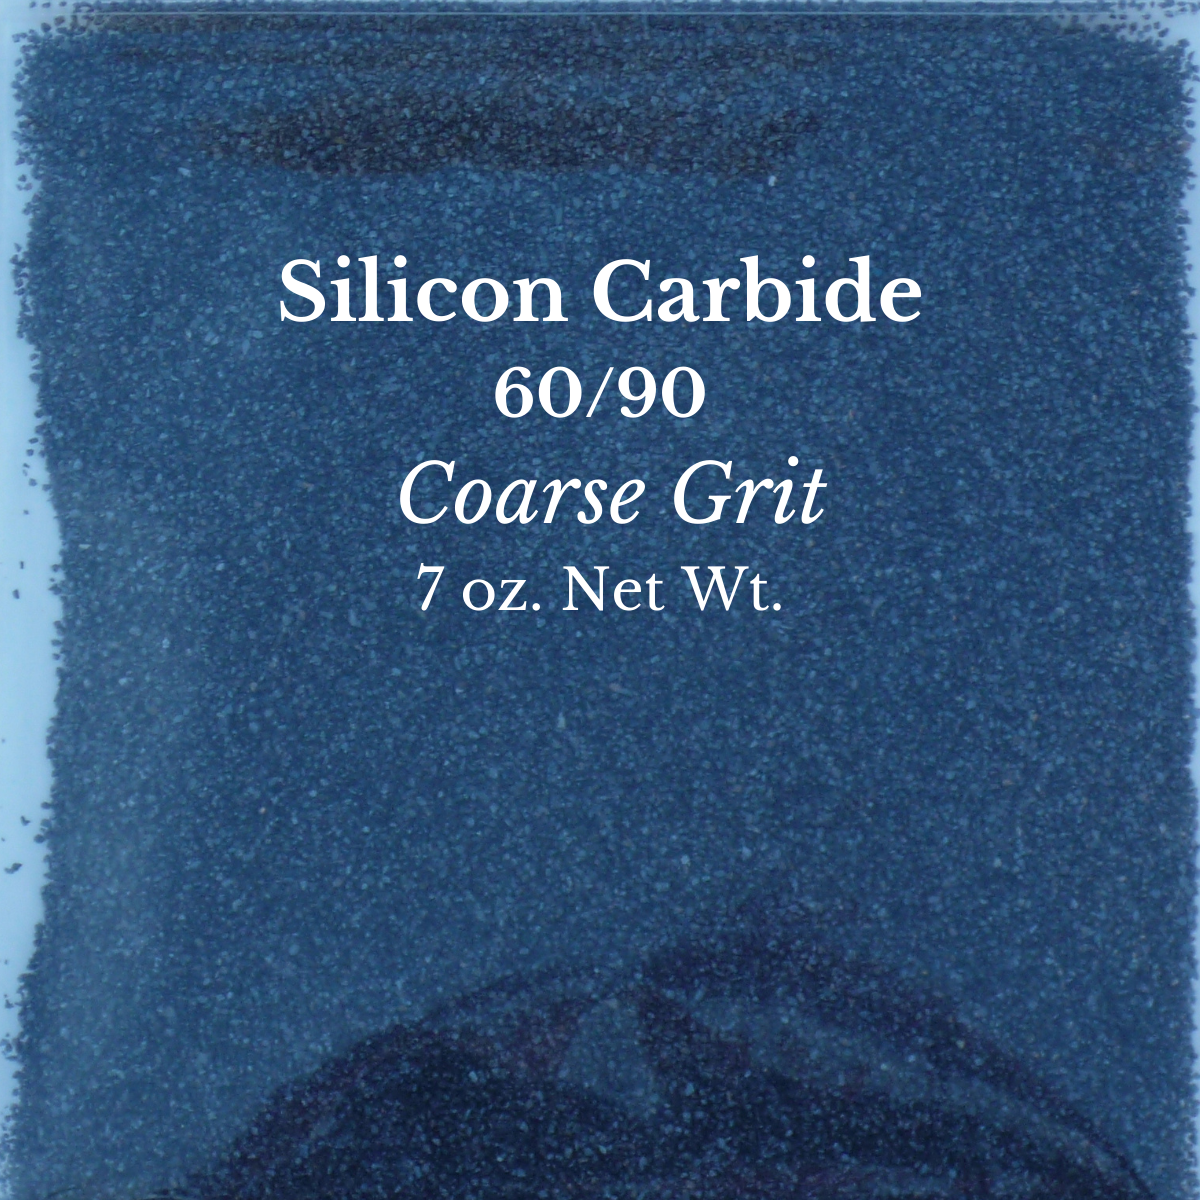 Silicon Carbide Rough tumbling media. 60/90 Grit.